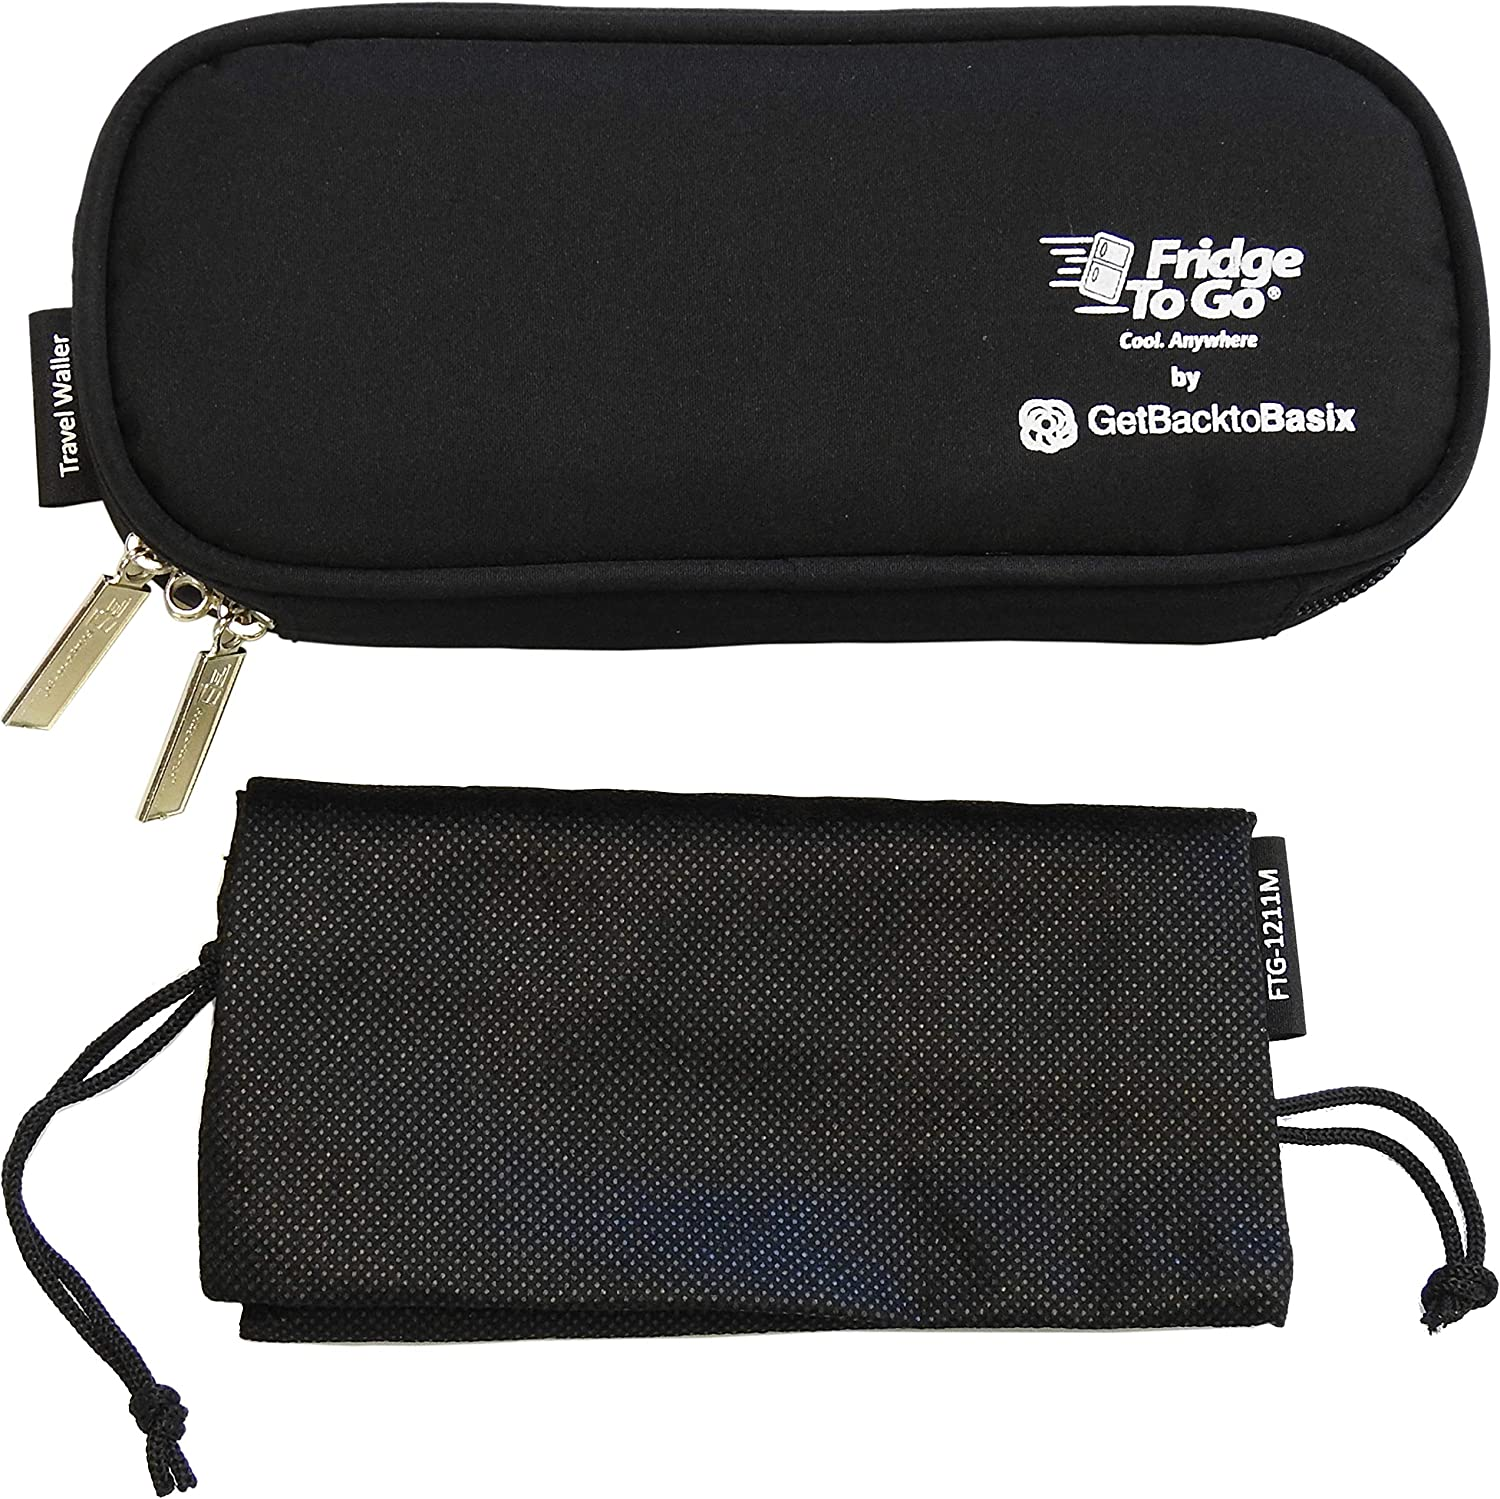 GetBacktoBasix Insulin Cooler Diabetic Medicine Travel Bag Mini - Insulated Epipen Carrying Case Keeps Medications Cool - FDA Approved   Mini